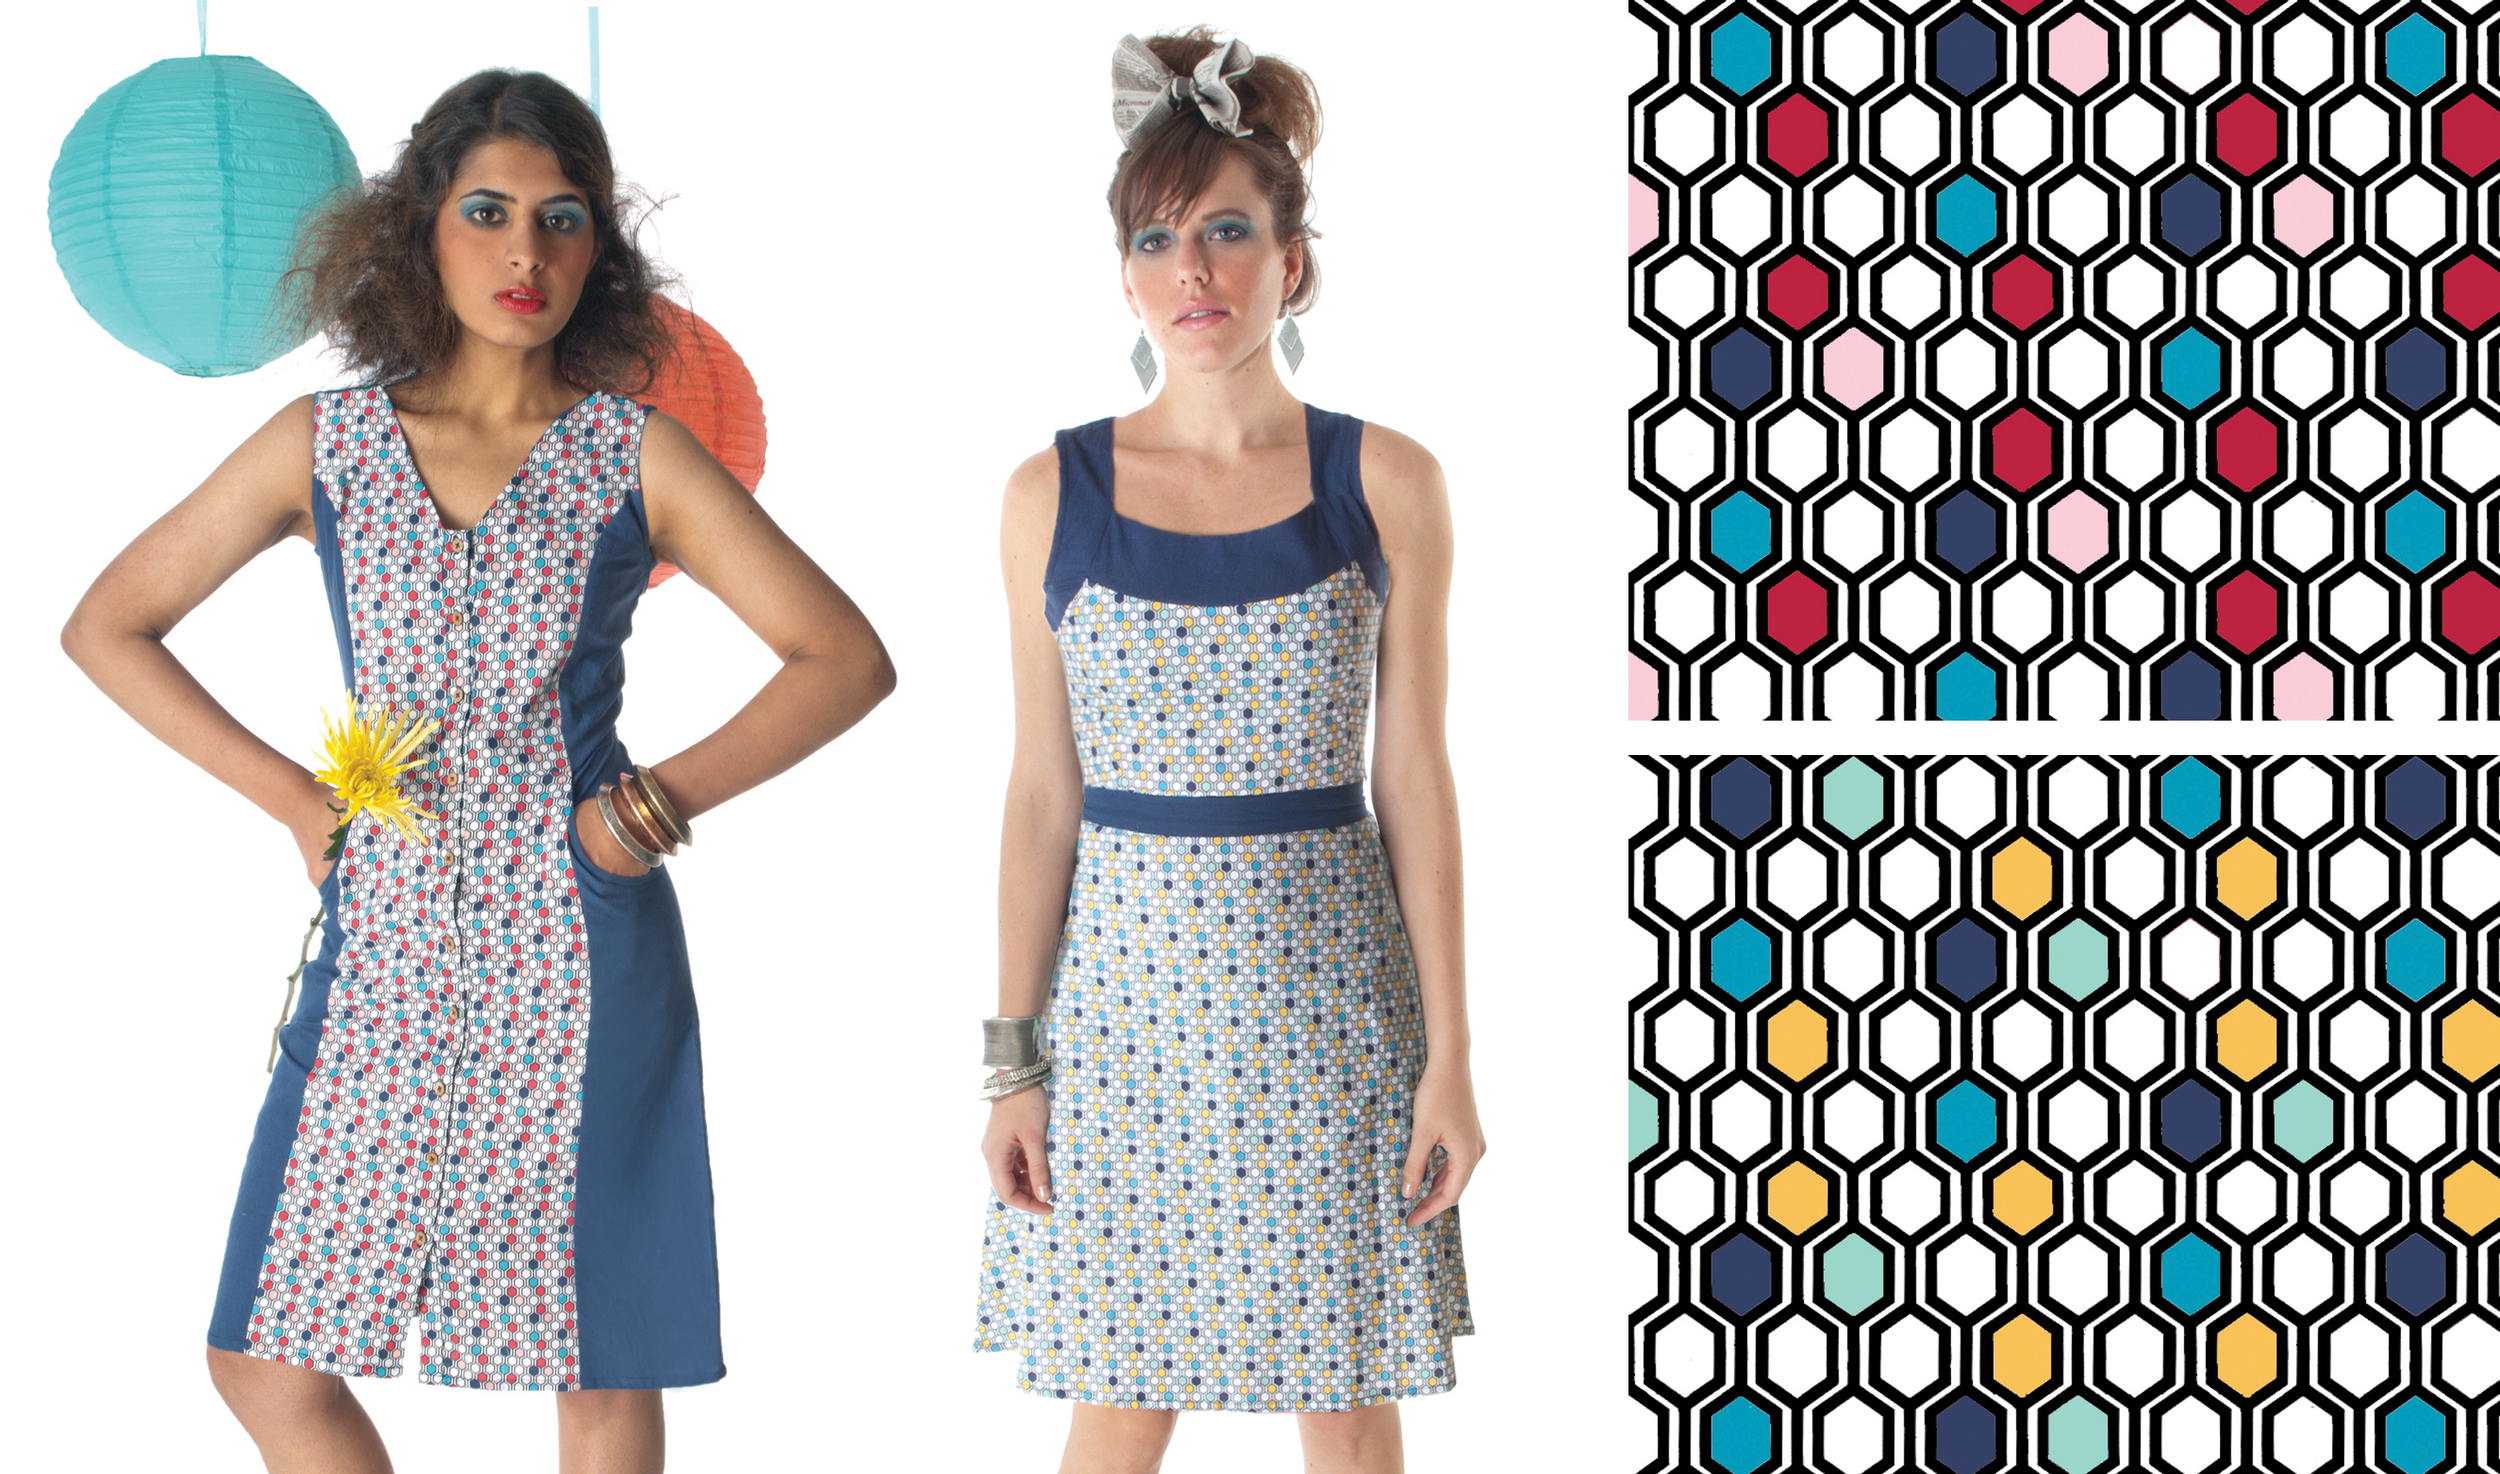 The  Hexagon Gone  Print. Textile design by Shifra Whiteman. Dresses by Mata Traders.